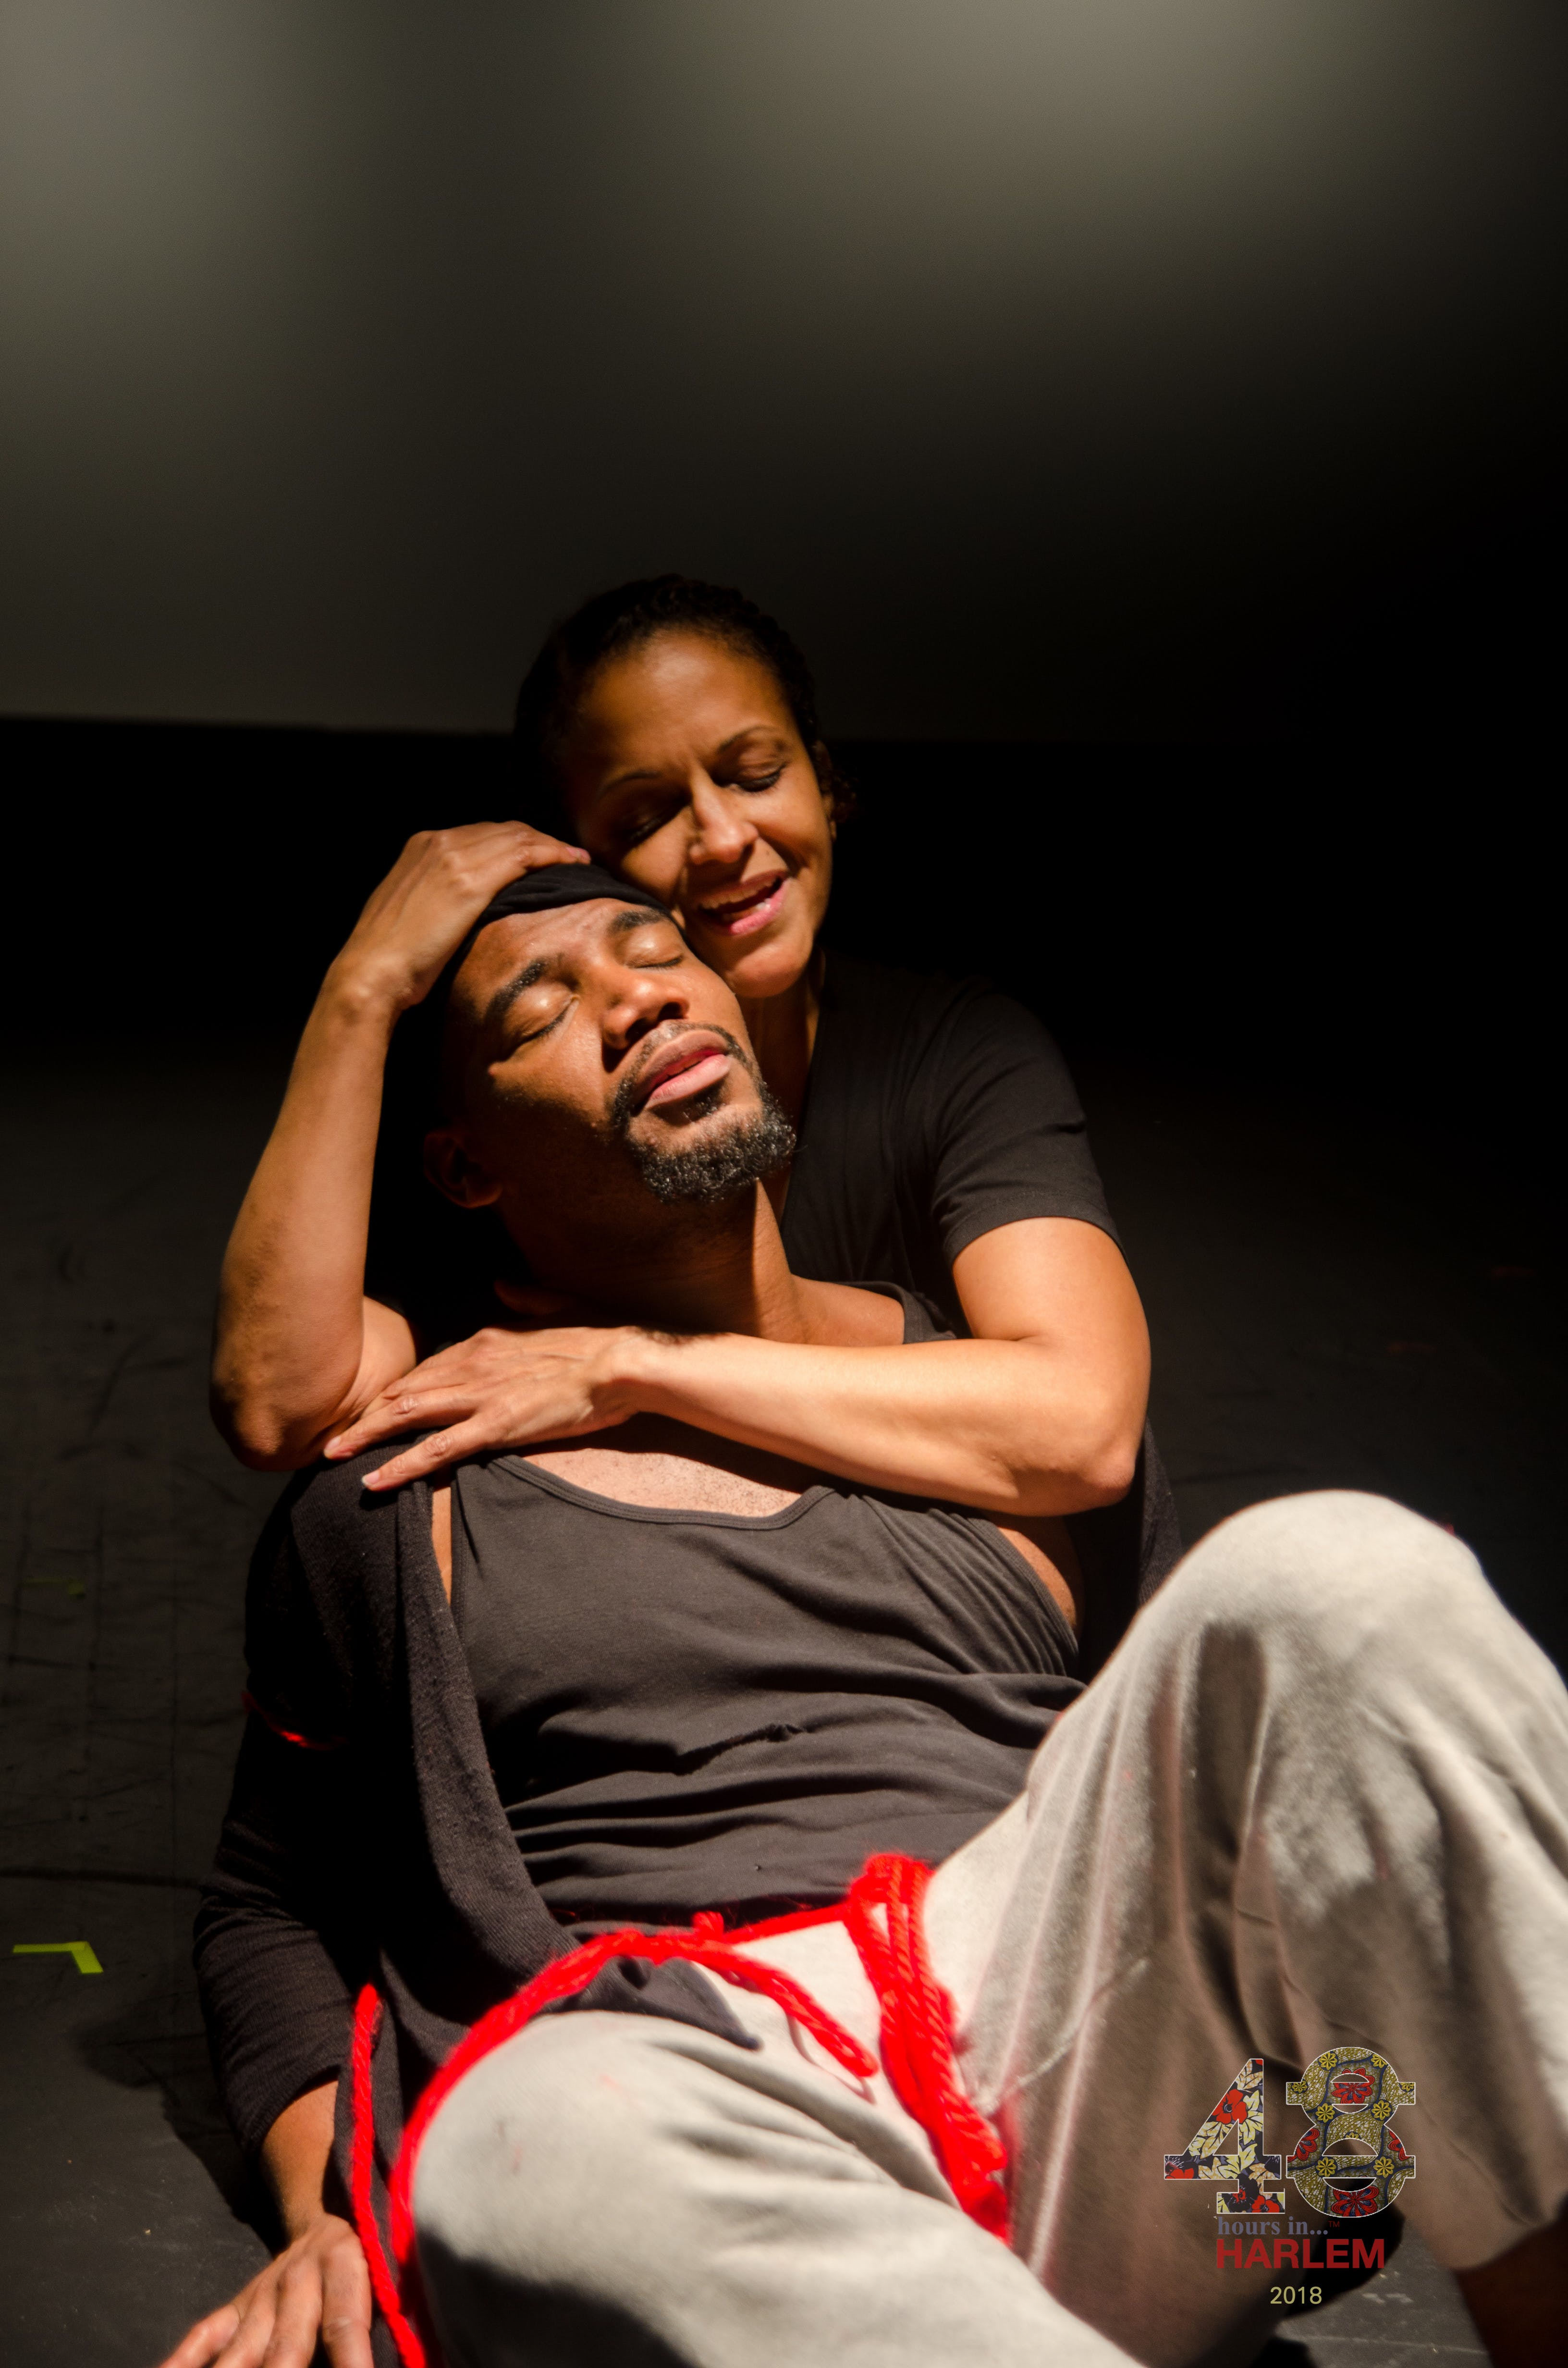 <p><em>Detroit Public Theatre, in collaboration with Harlem9, will produce &quot;48Hours in... &trade;Detroit, a festival of new 10-minute plays by local artists. Credit: Garlia Cornelia Jones</em></p>